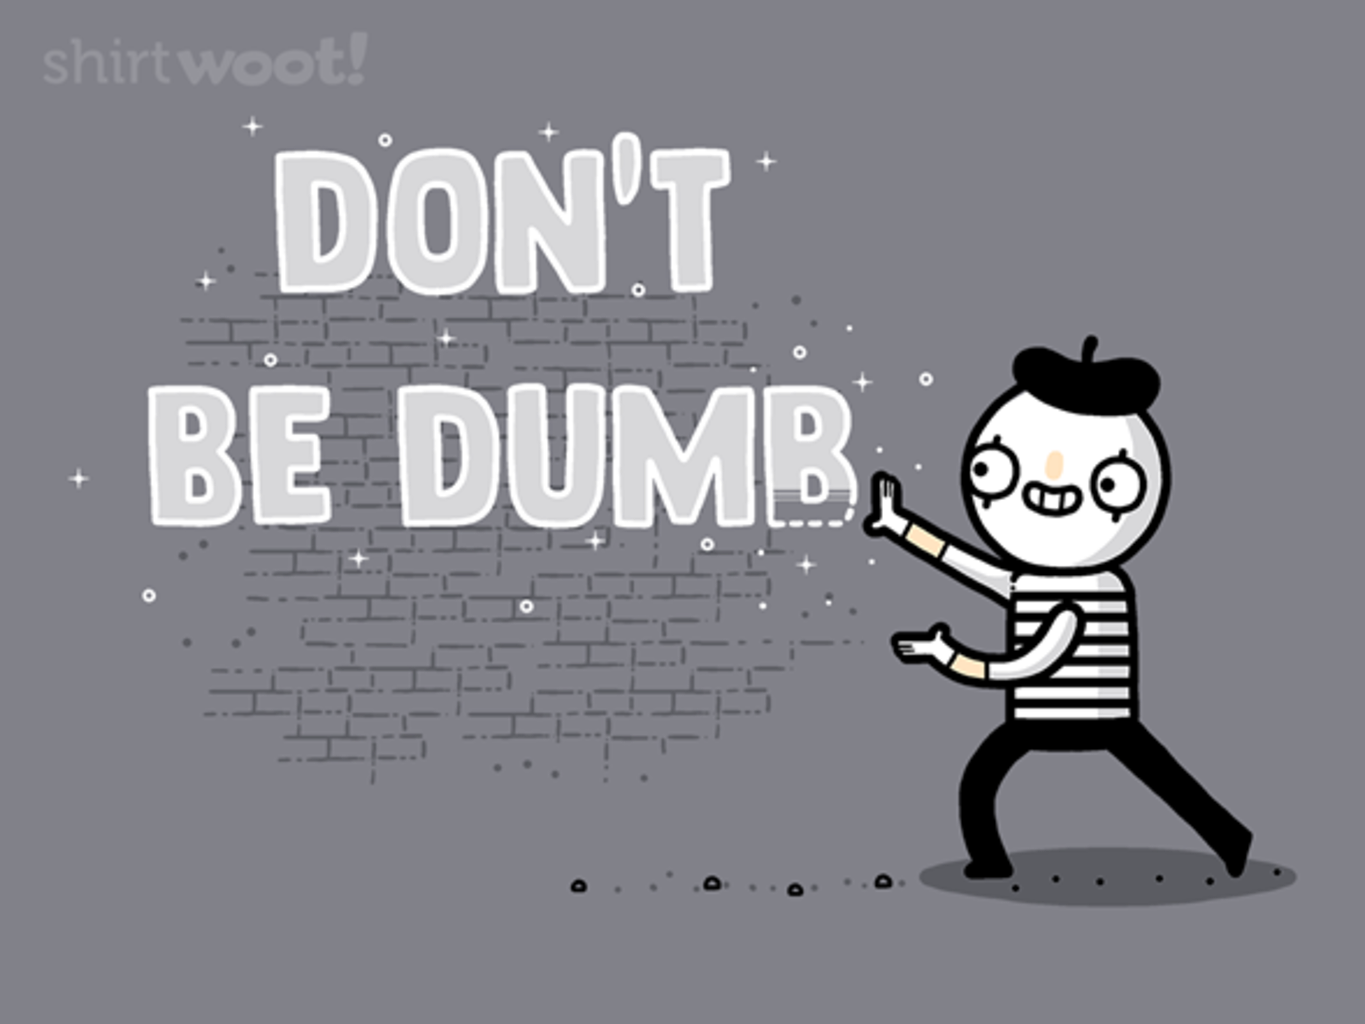 Woot!: Don't Be Dumb